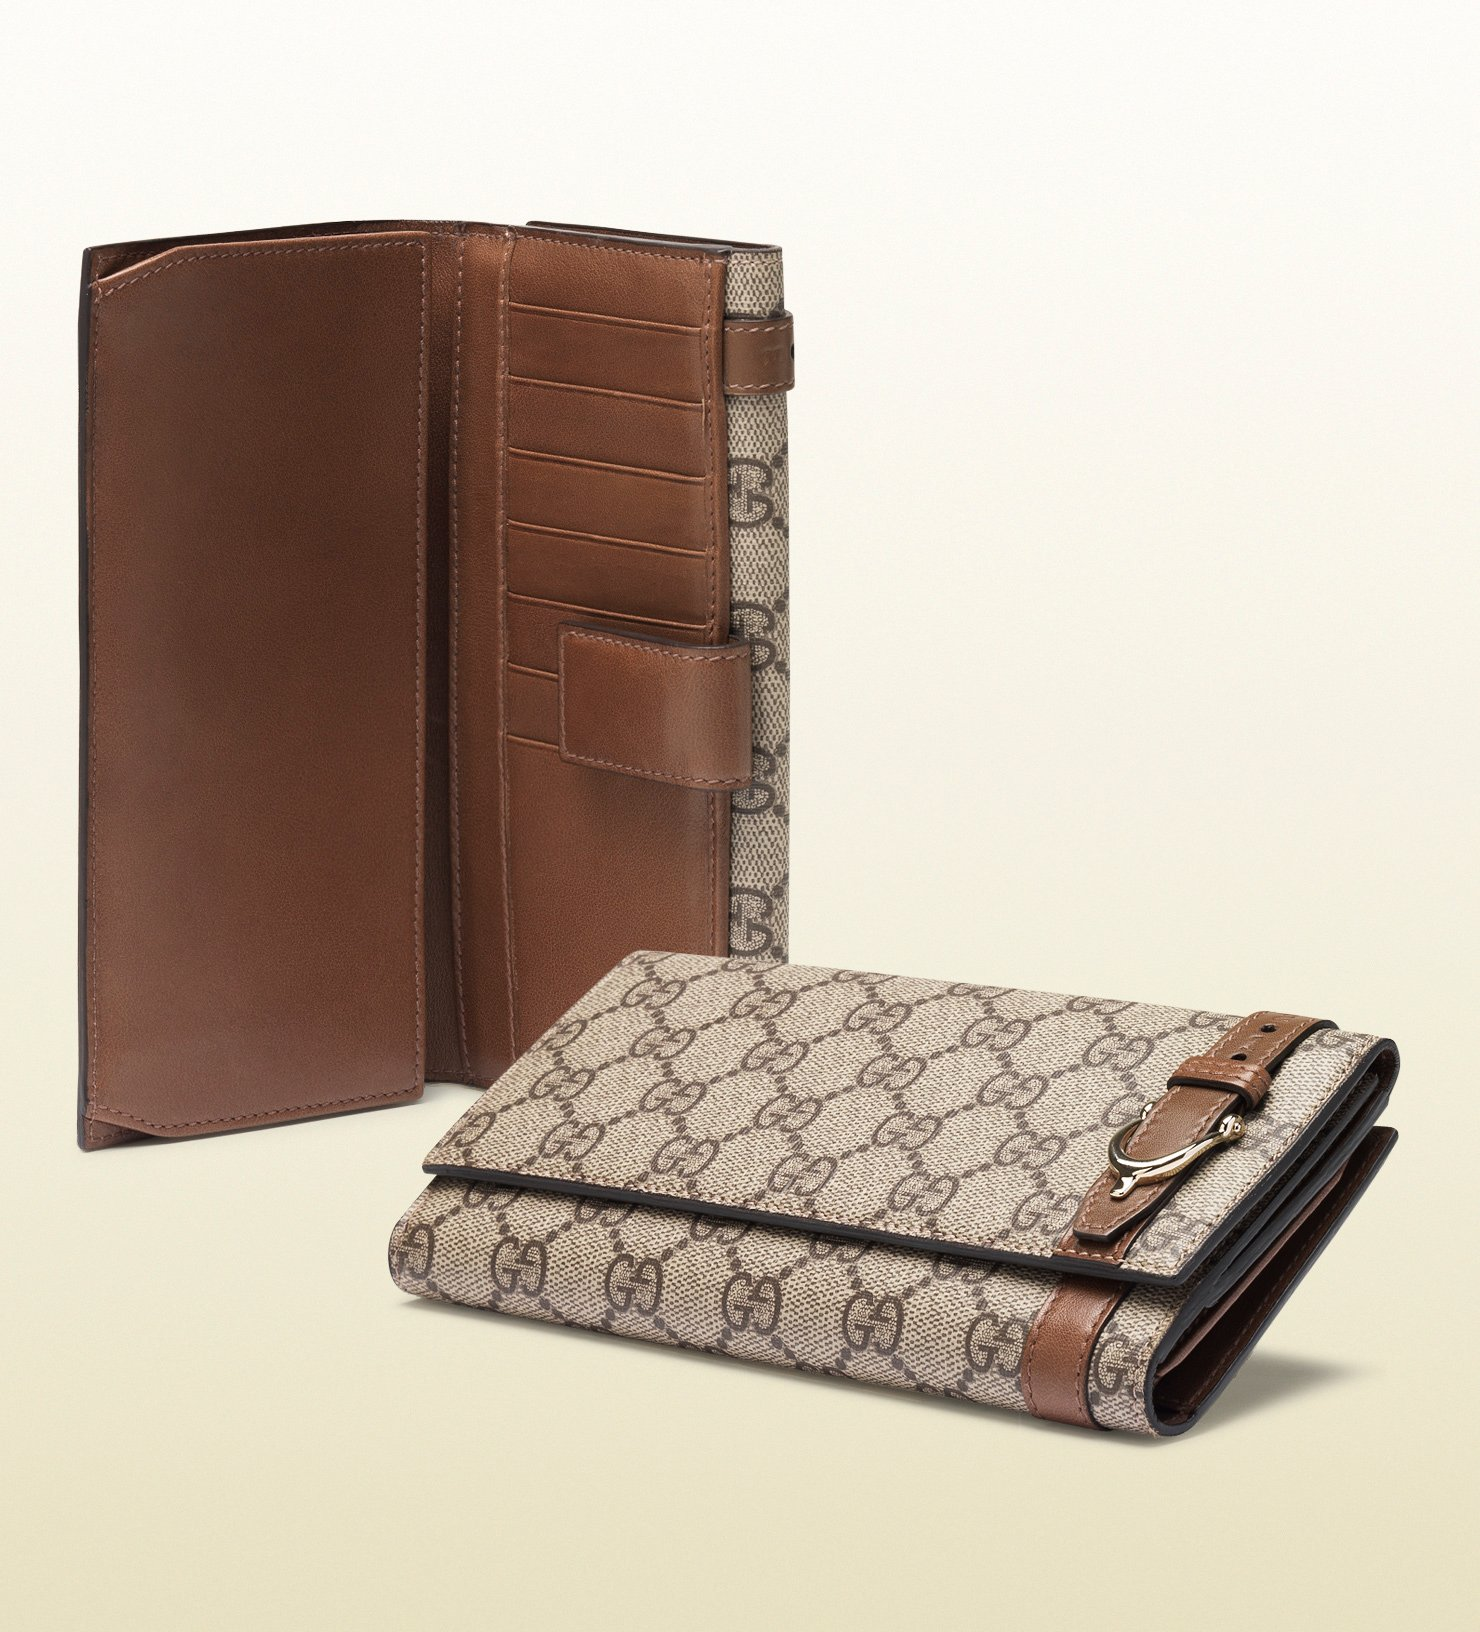 a7ee110d28ec Gucci Wallet Womens Uk | Stanford Center for Opportunity Policy in ...